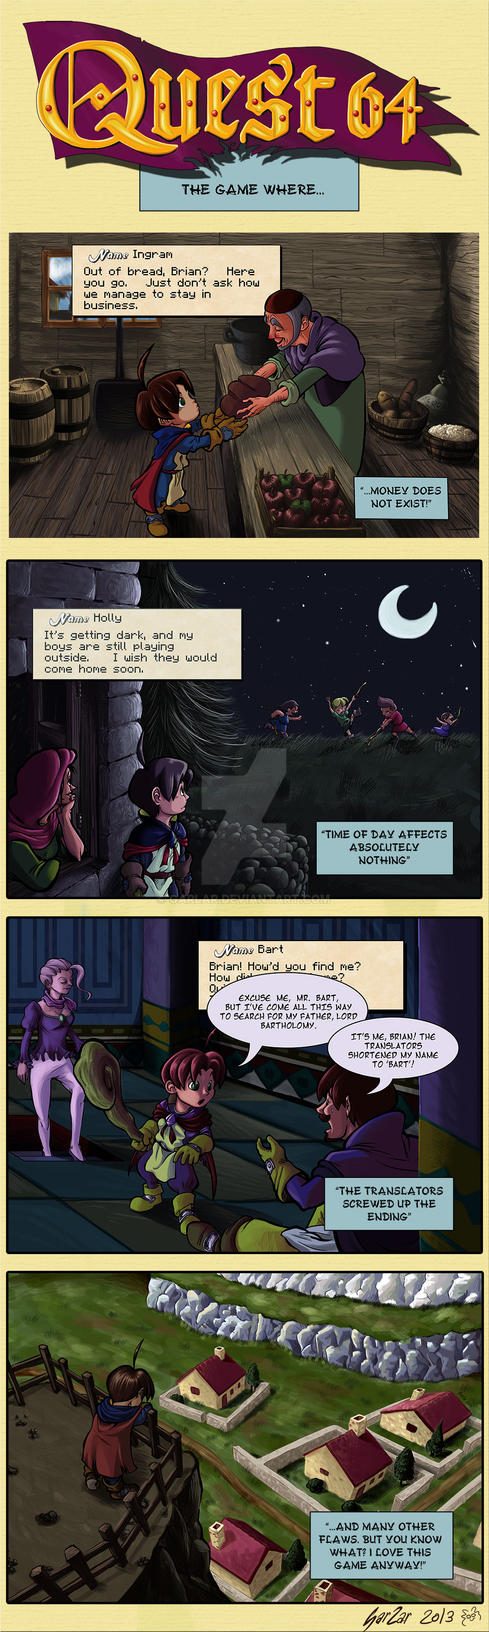 Commission - QUEST 64: The game where...